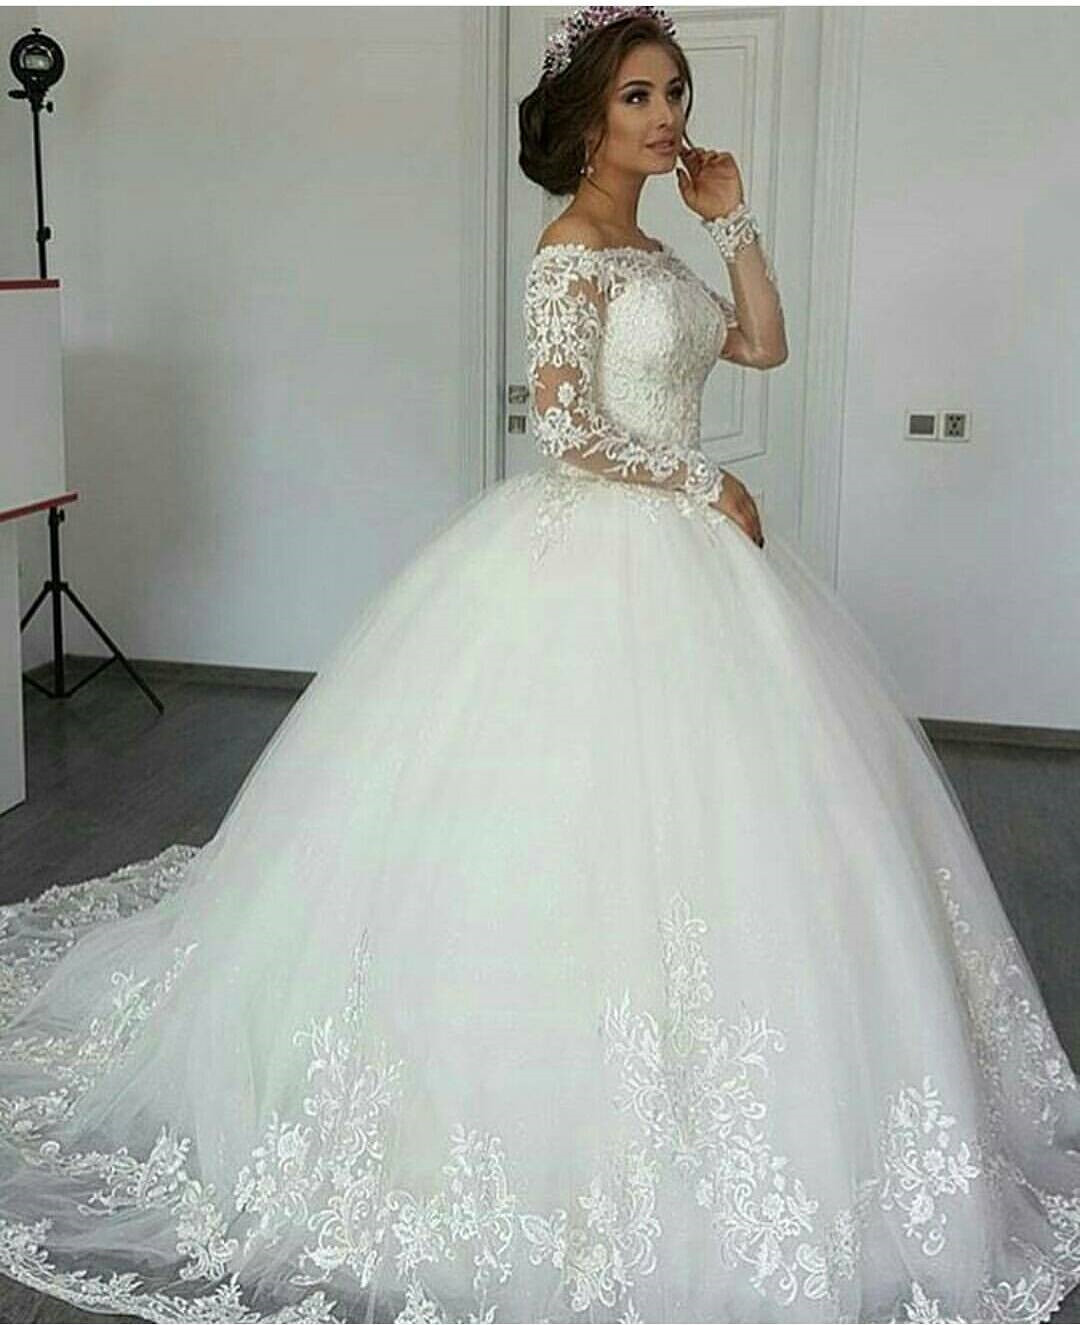 Long sleeve wedding dress ivory wedding dress wedding for Elegant ball gown wedding dresses